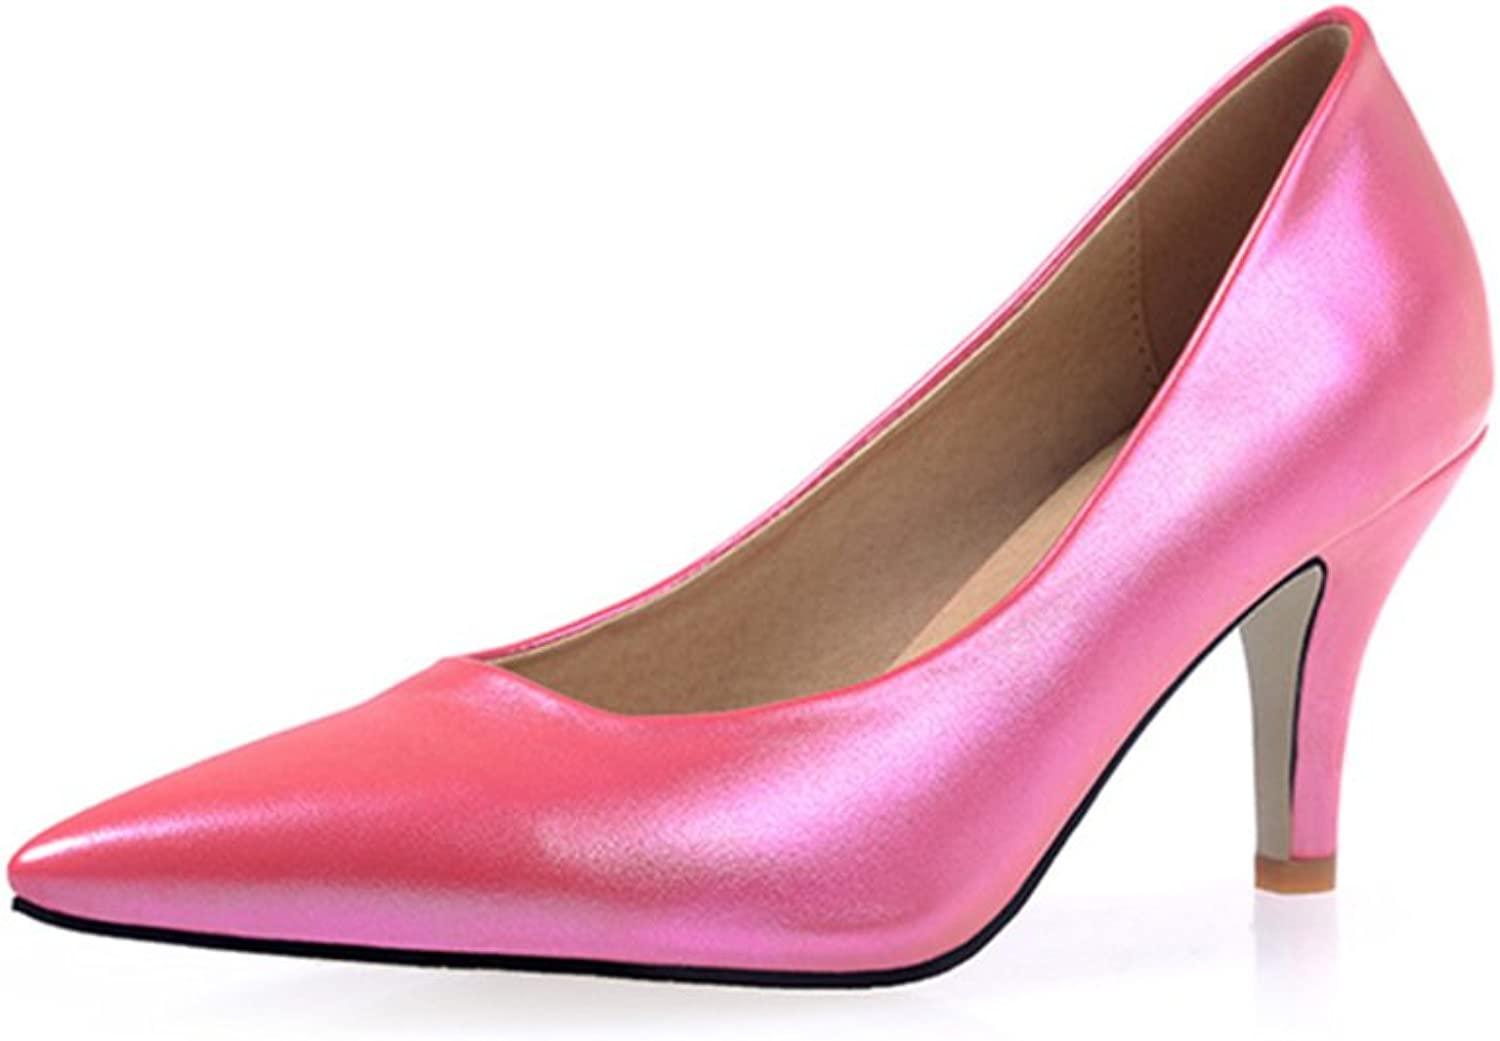 RHFDVGDS four seasons ladies high heel Stiletto pointy shoes Vocational students to work in the spring shoes